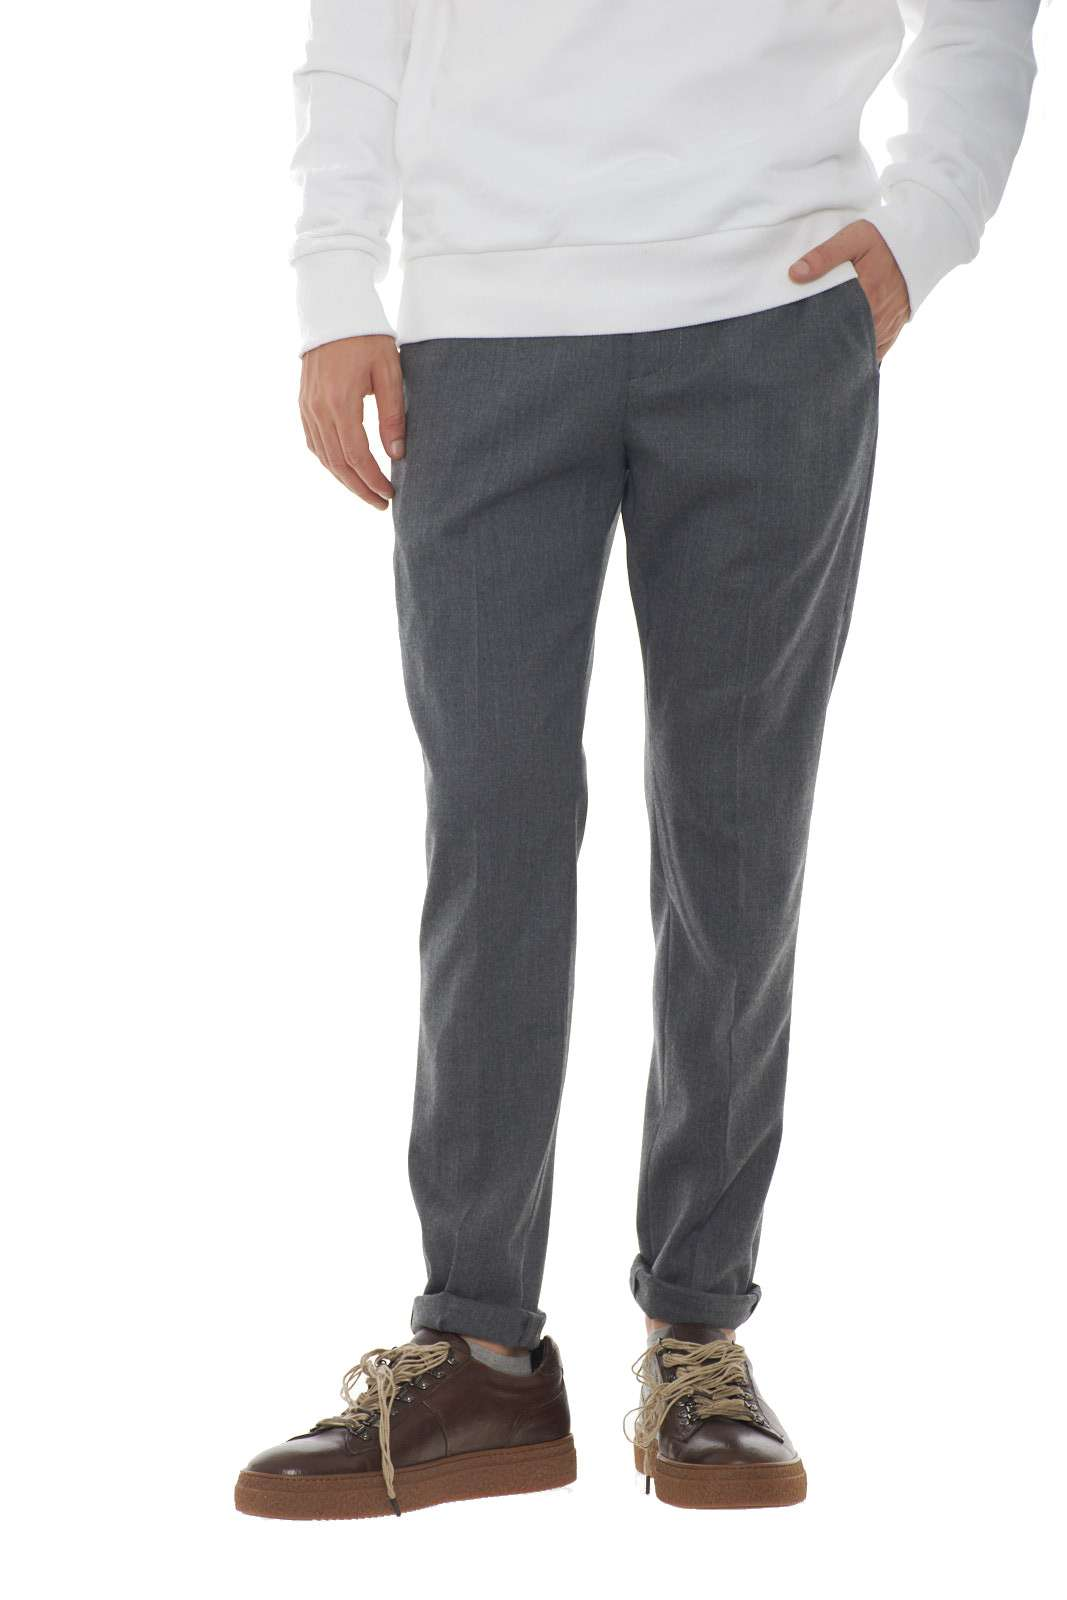 https://www.parmax.com/media/catalog/product/a/i/AI-outlet_parmax-pantaloni-uomo-Dondup-UP235%20WS0121U-A.jpg